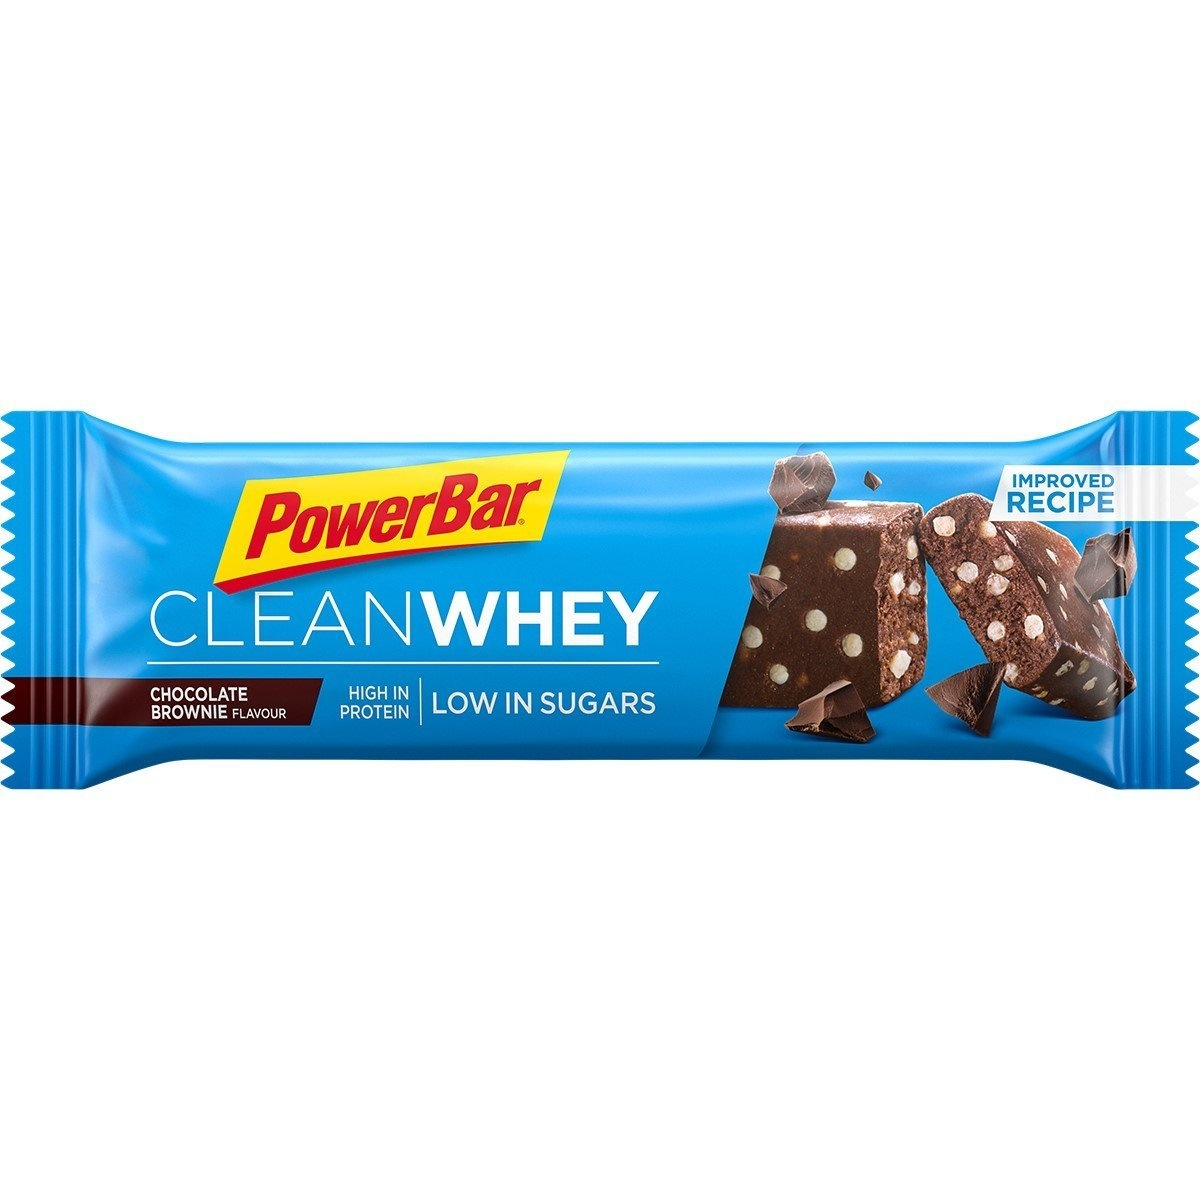 PowerBar Clean Whey Proteinbar Chocolate Brownie - 45g